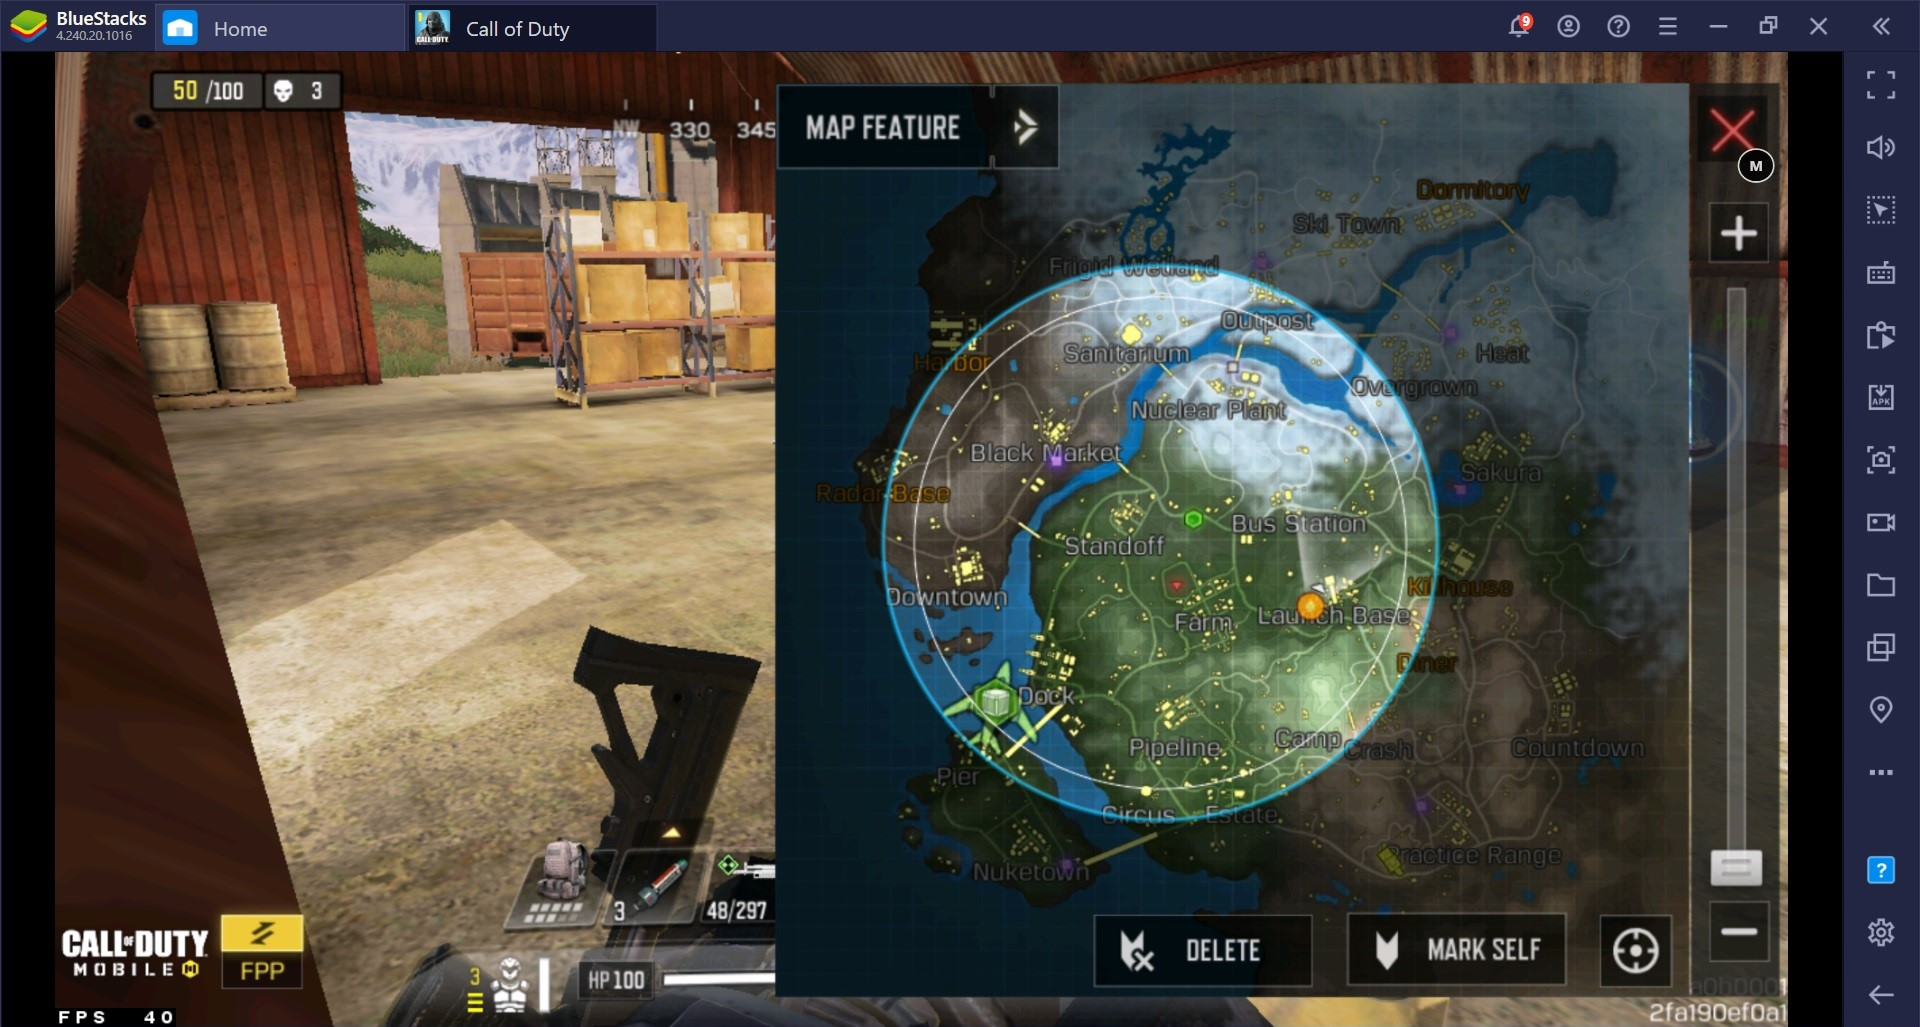 Call of Duty: Mobile Battle Royale Guide, Learn How to Rush Properly